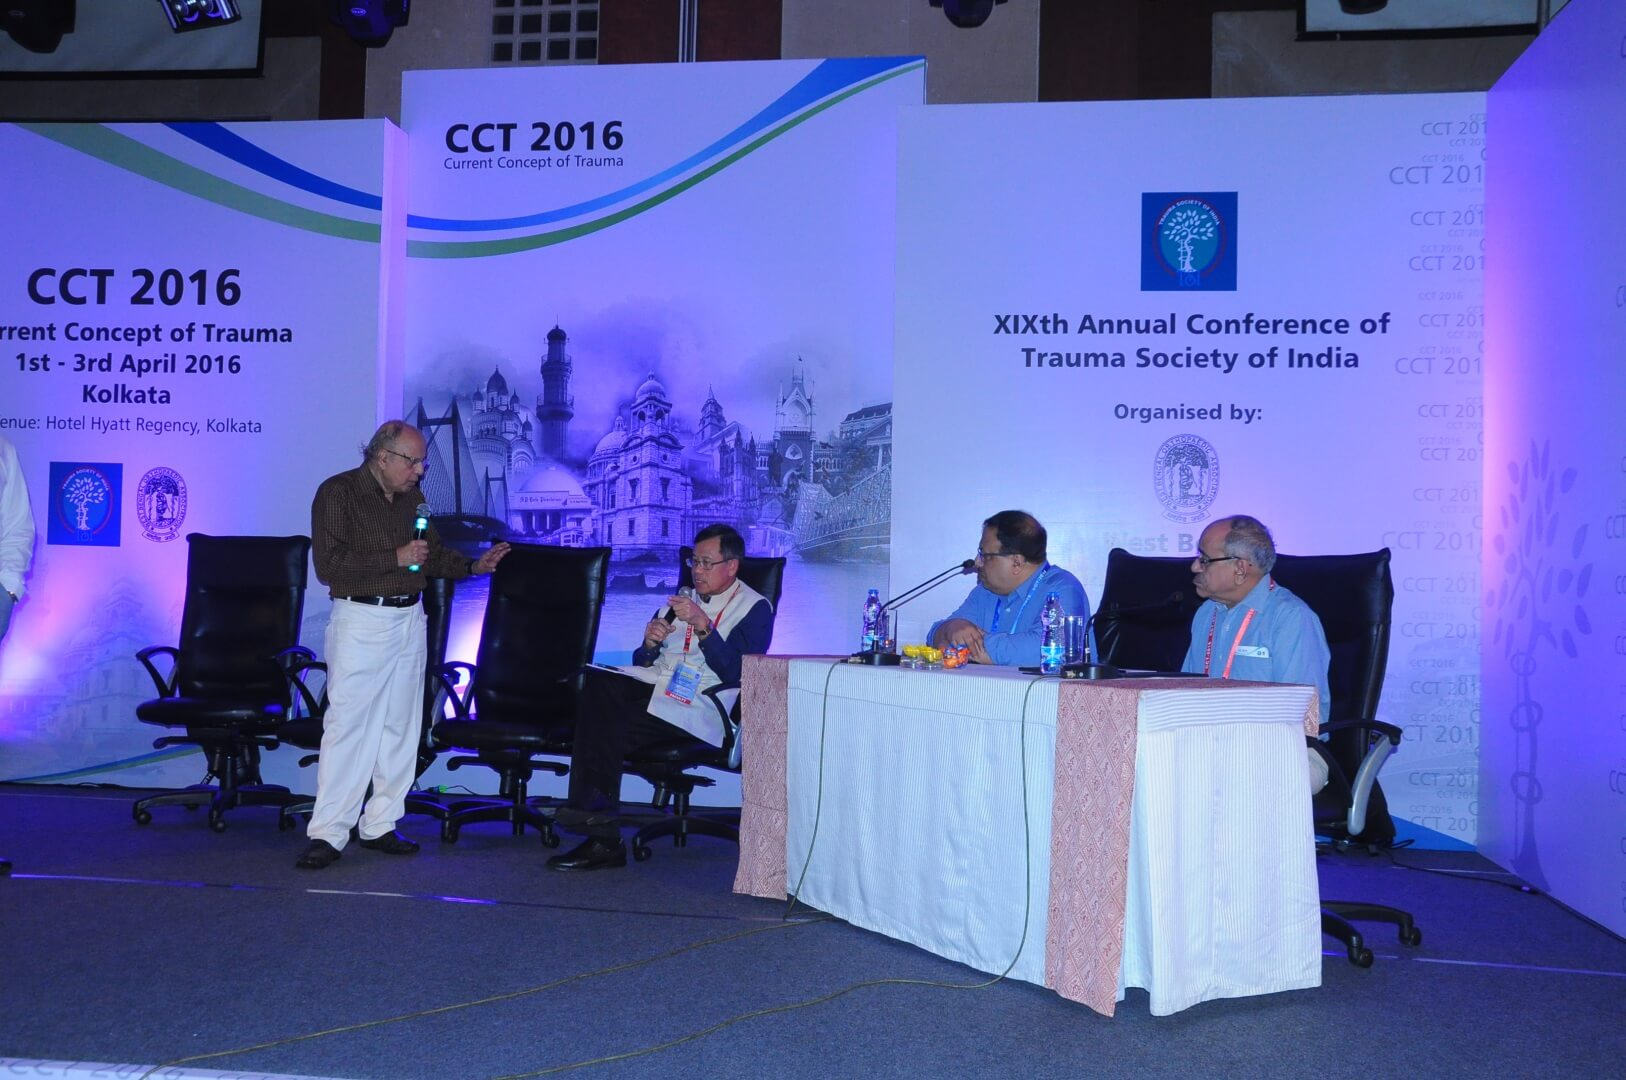 19th Annual Conference of Trauma Society of India, CCT 2016 Kolkata